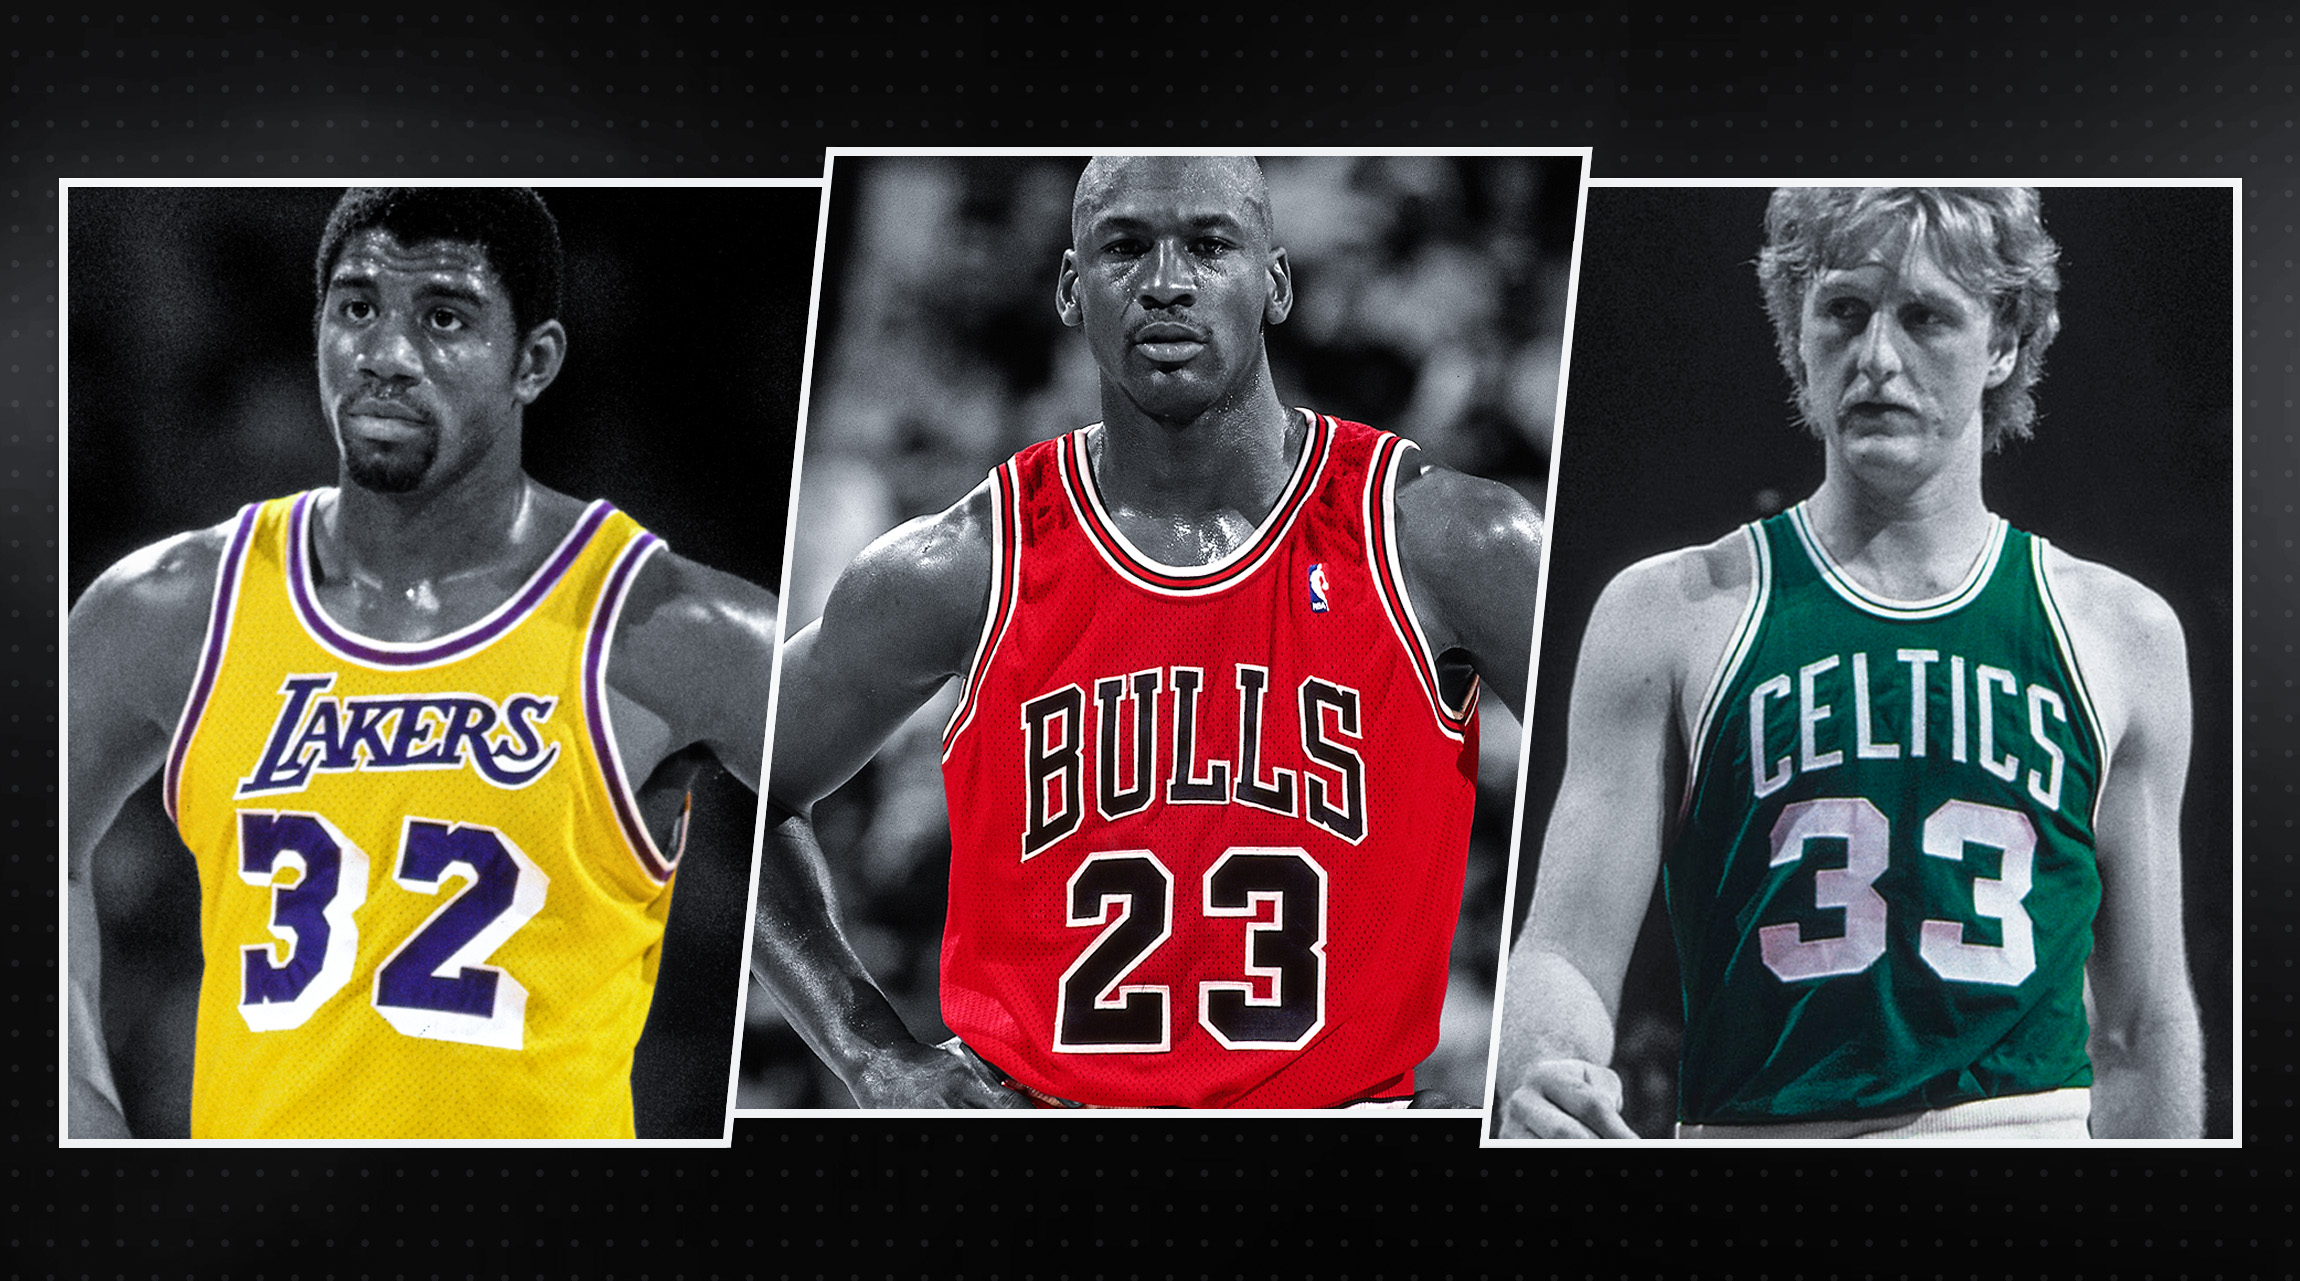 c43bfafdd NBA jerseys  Ranking the 30 greatest in history